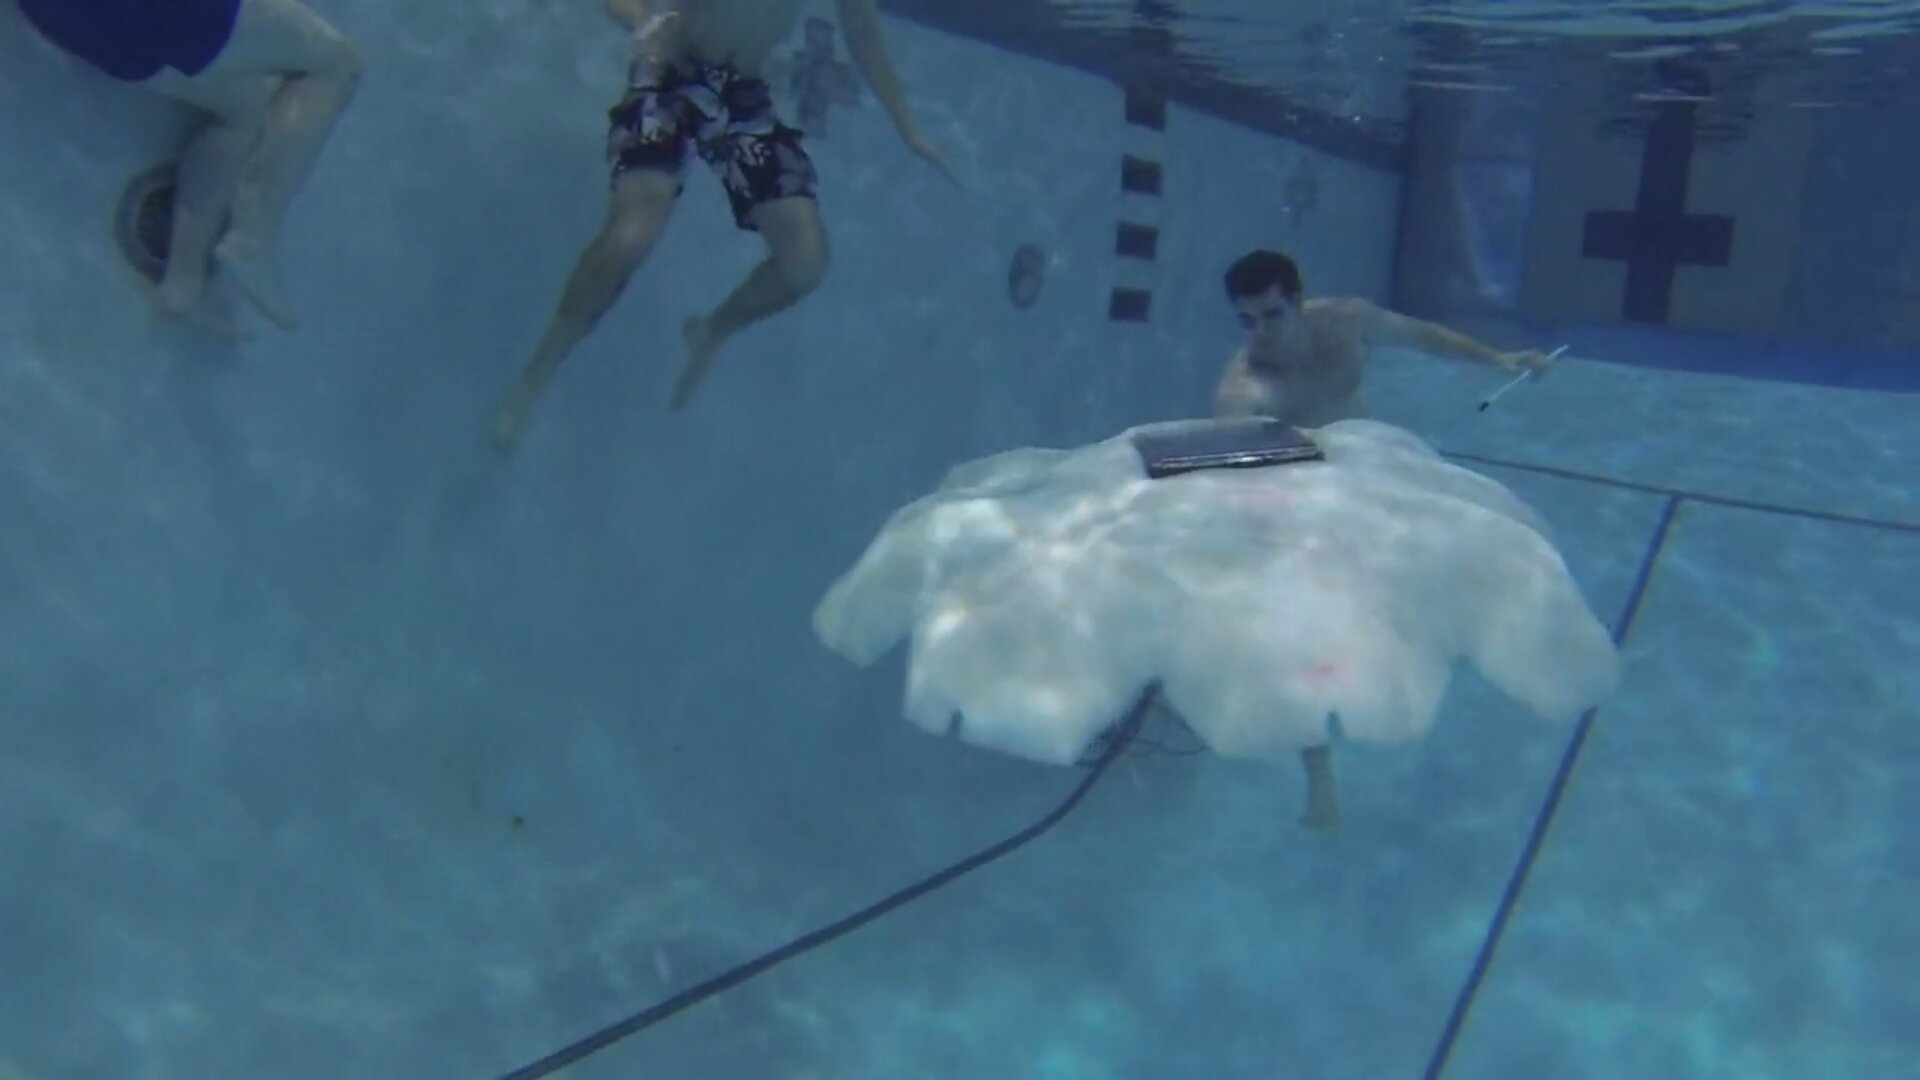 Robot-Jellyfish for Underwater Surveillance